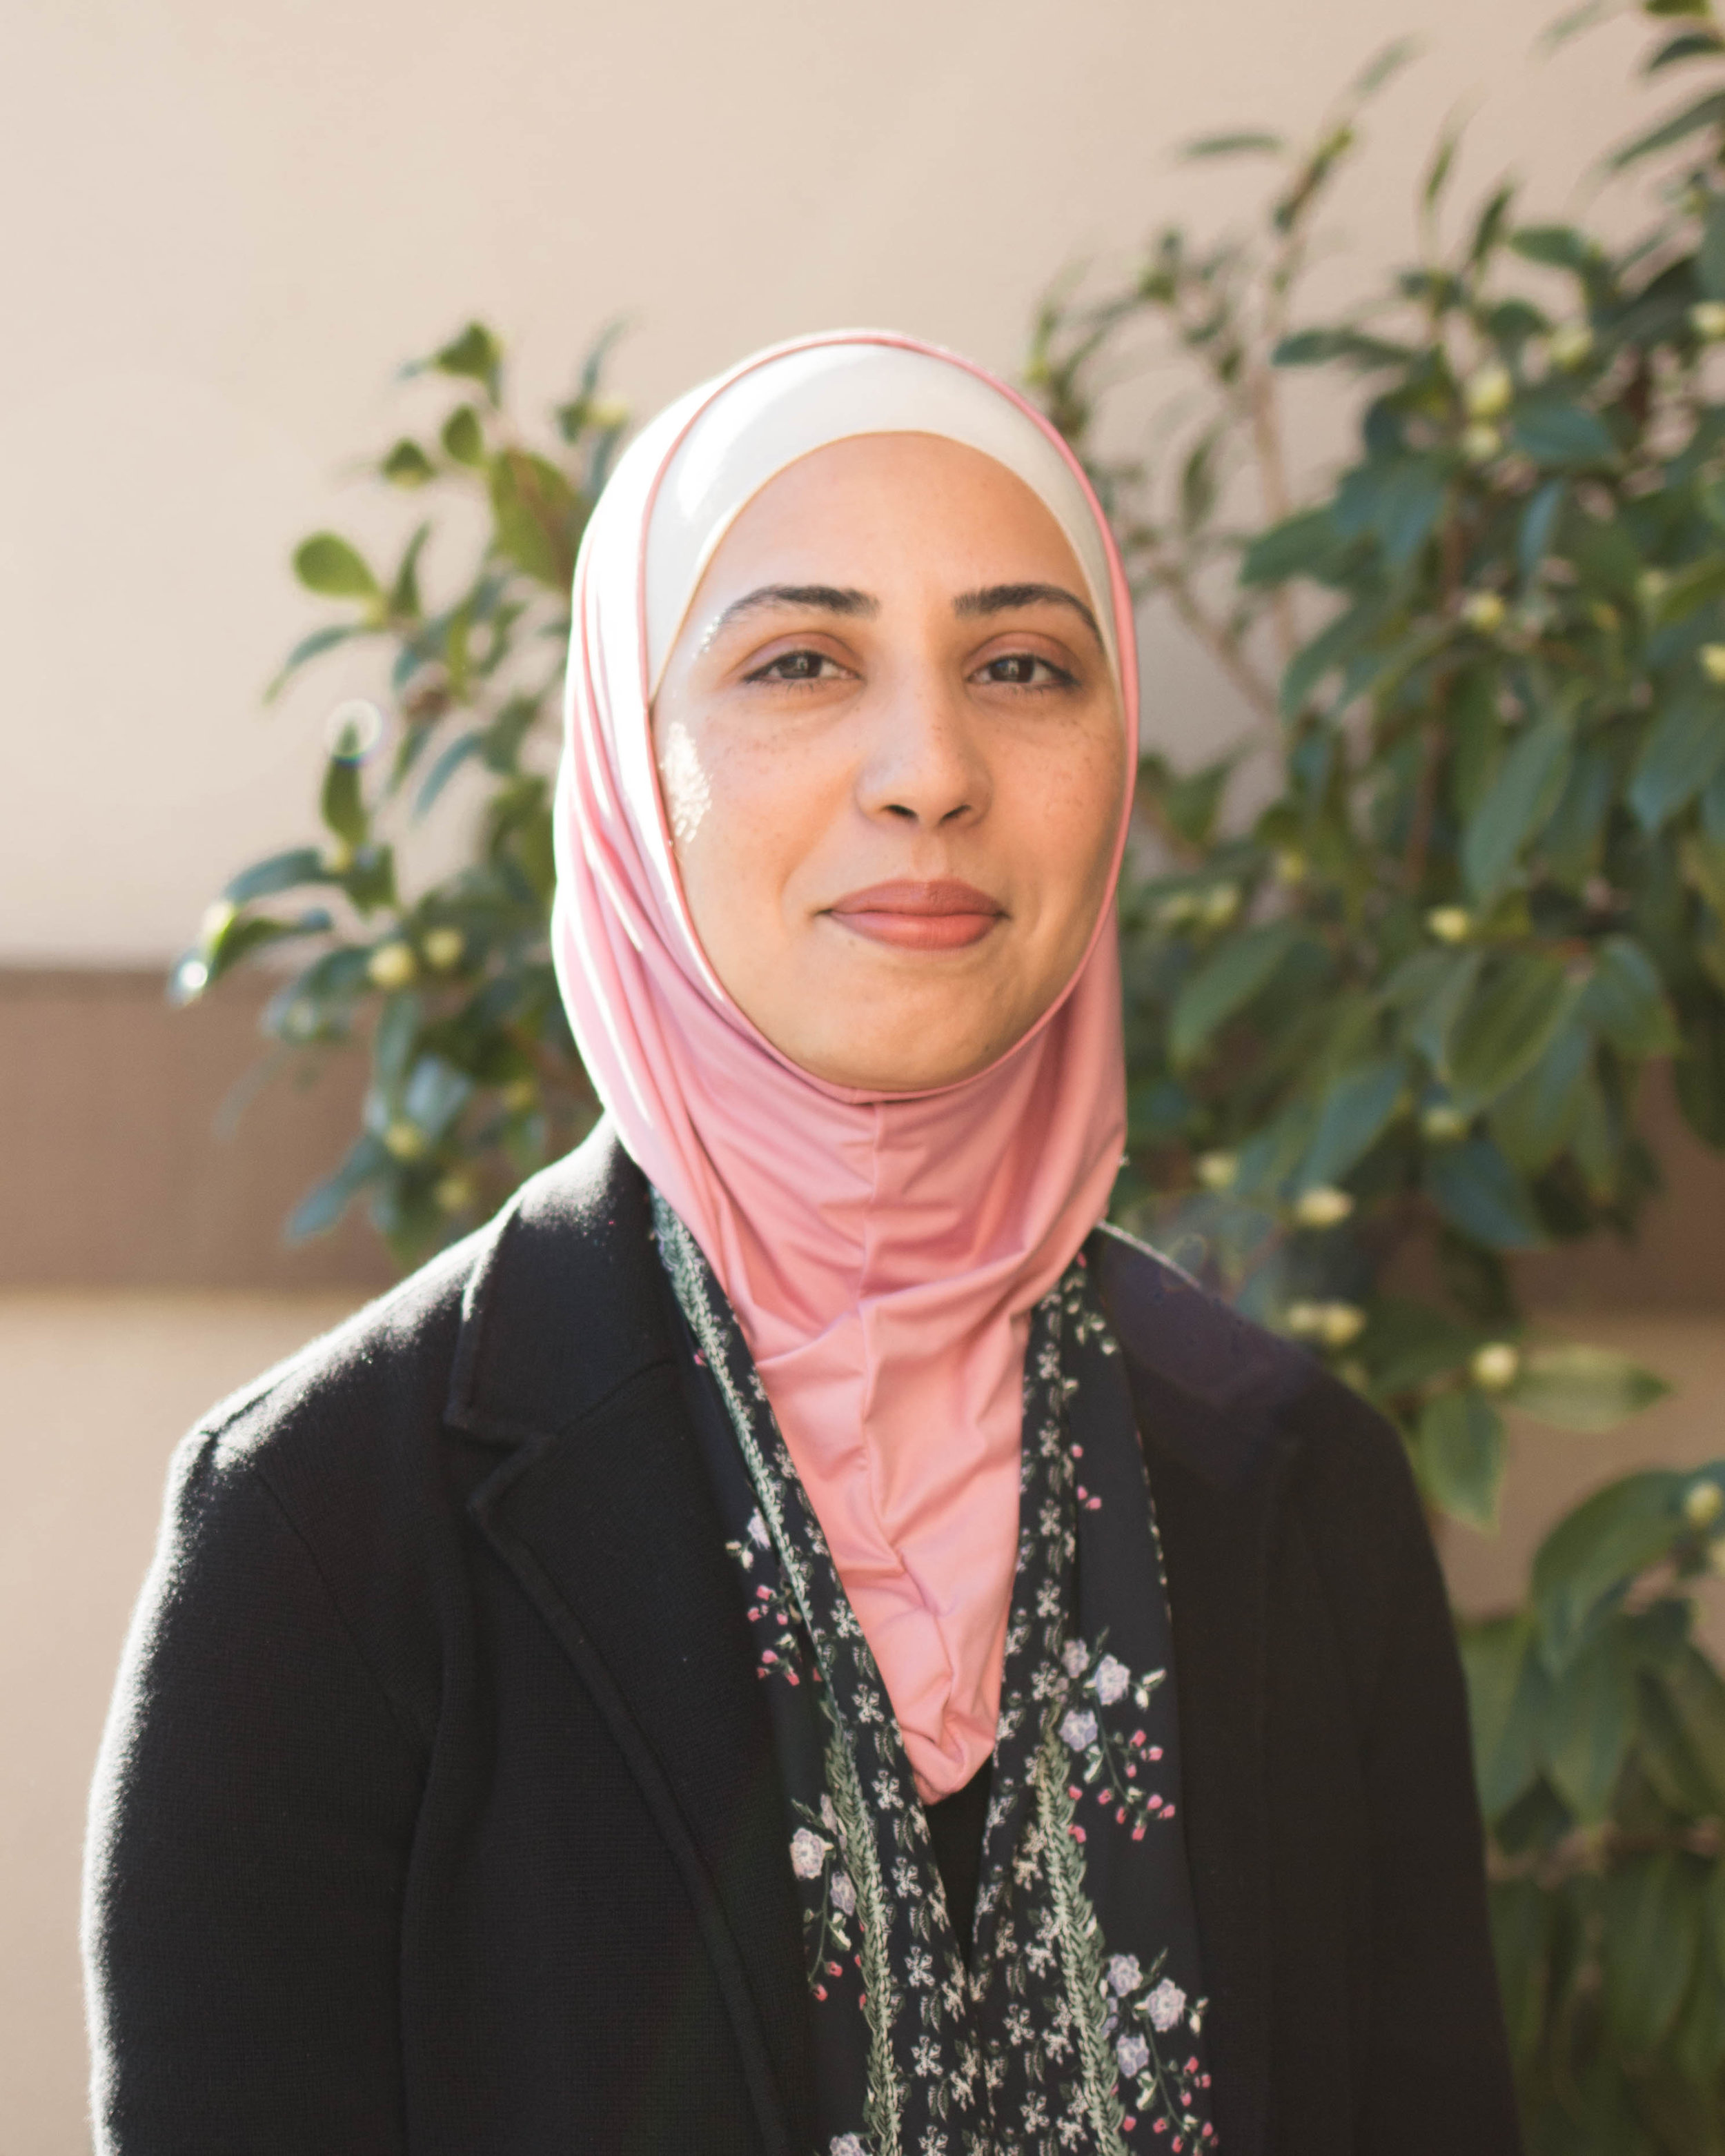 Sundus Ali, M.D.  After completing her Pediatric Residency training on the East coast, Dr Ali  moved to the Bay Area in the summer of 2011, and has been working as a locum general pediatrician.  In addition to her passion for working with children, Dr. Ali is fond of reading, hiking and travelling.  Just like Dr Pete, Dr Ali  will  never  run a marathon. She is a mom of 2 pre-schoolers who keep her considerably busy on her off days.    Medical School  Dow Medical College, Pakistan   Internship/Residency  New York Methodist Hospital    Certification  American Board of Pediatrics, 2012   Affiliate Staff Member El Camino Hospital